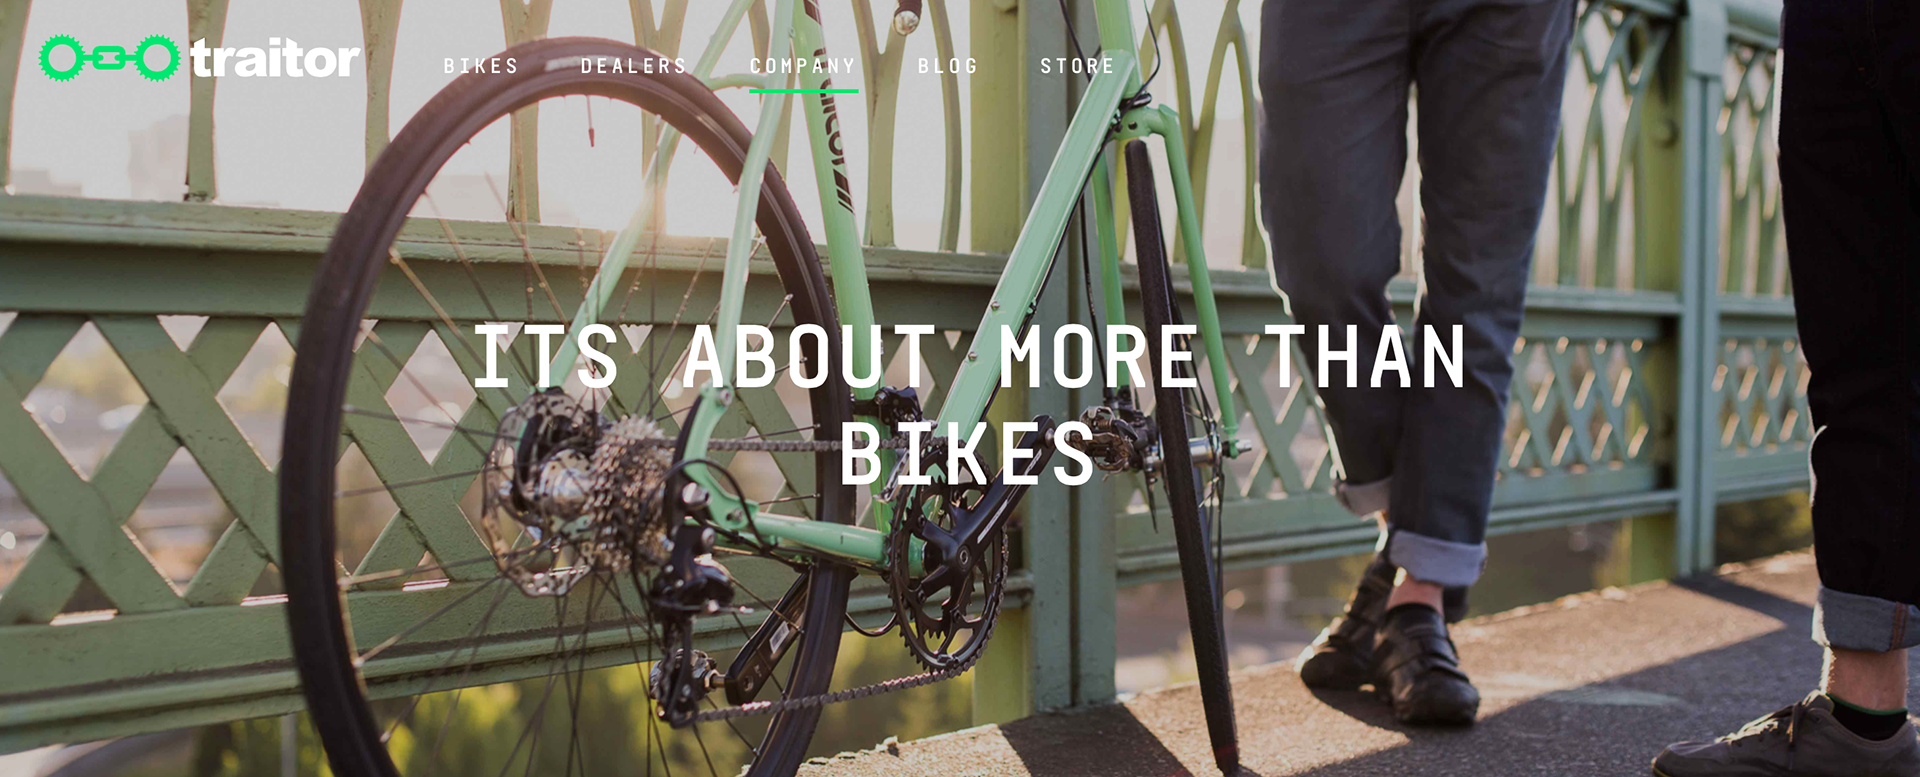 Case Study: Traitor Cycles Brand and Site Development   Strategy/Content/Execution